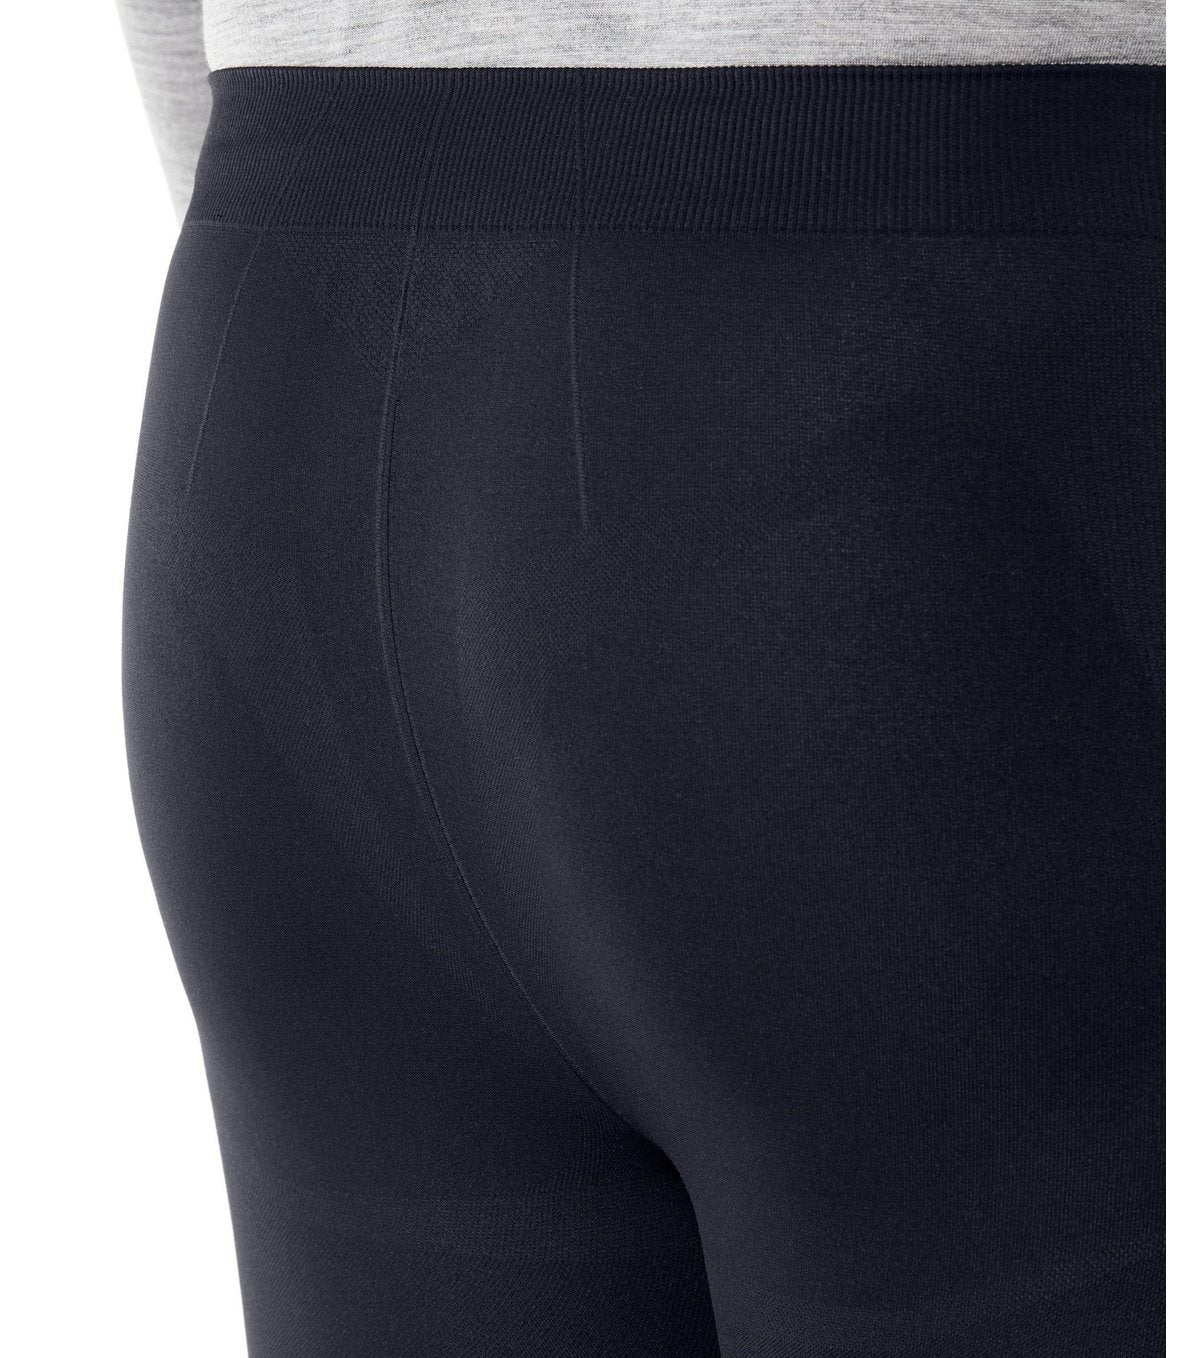 Herren Tights Warm